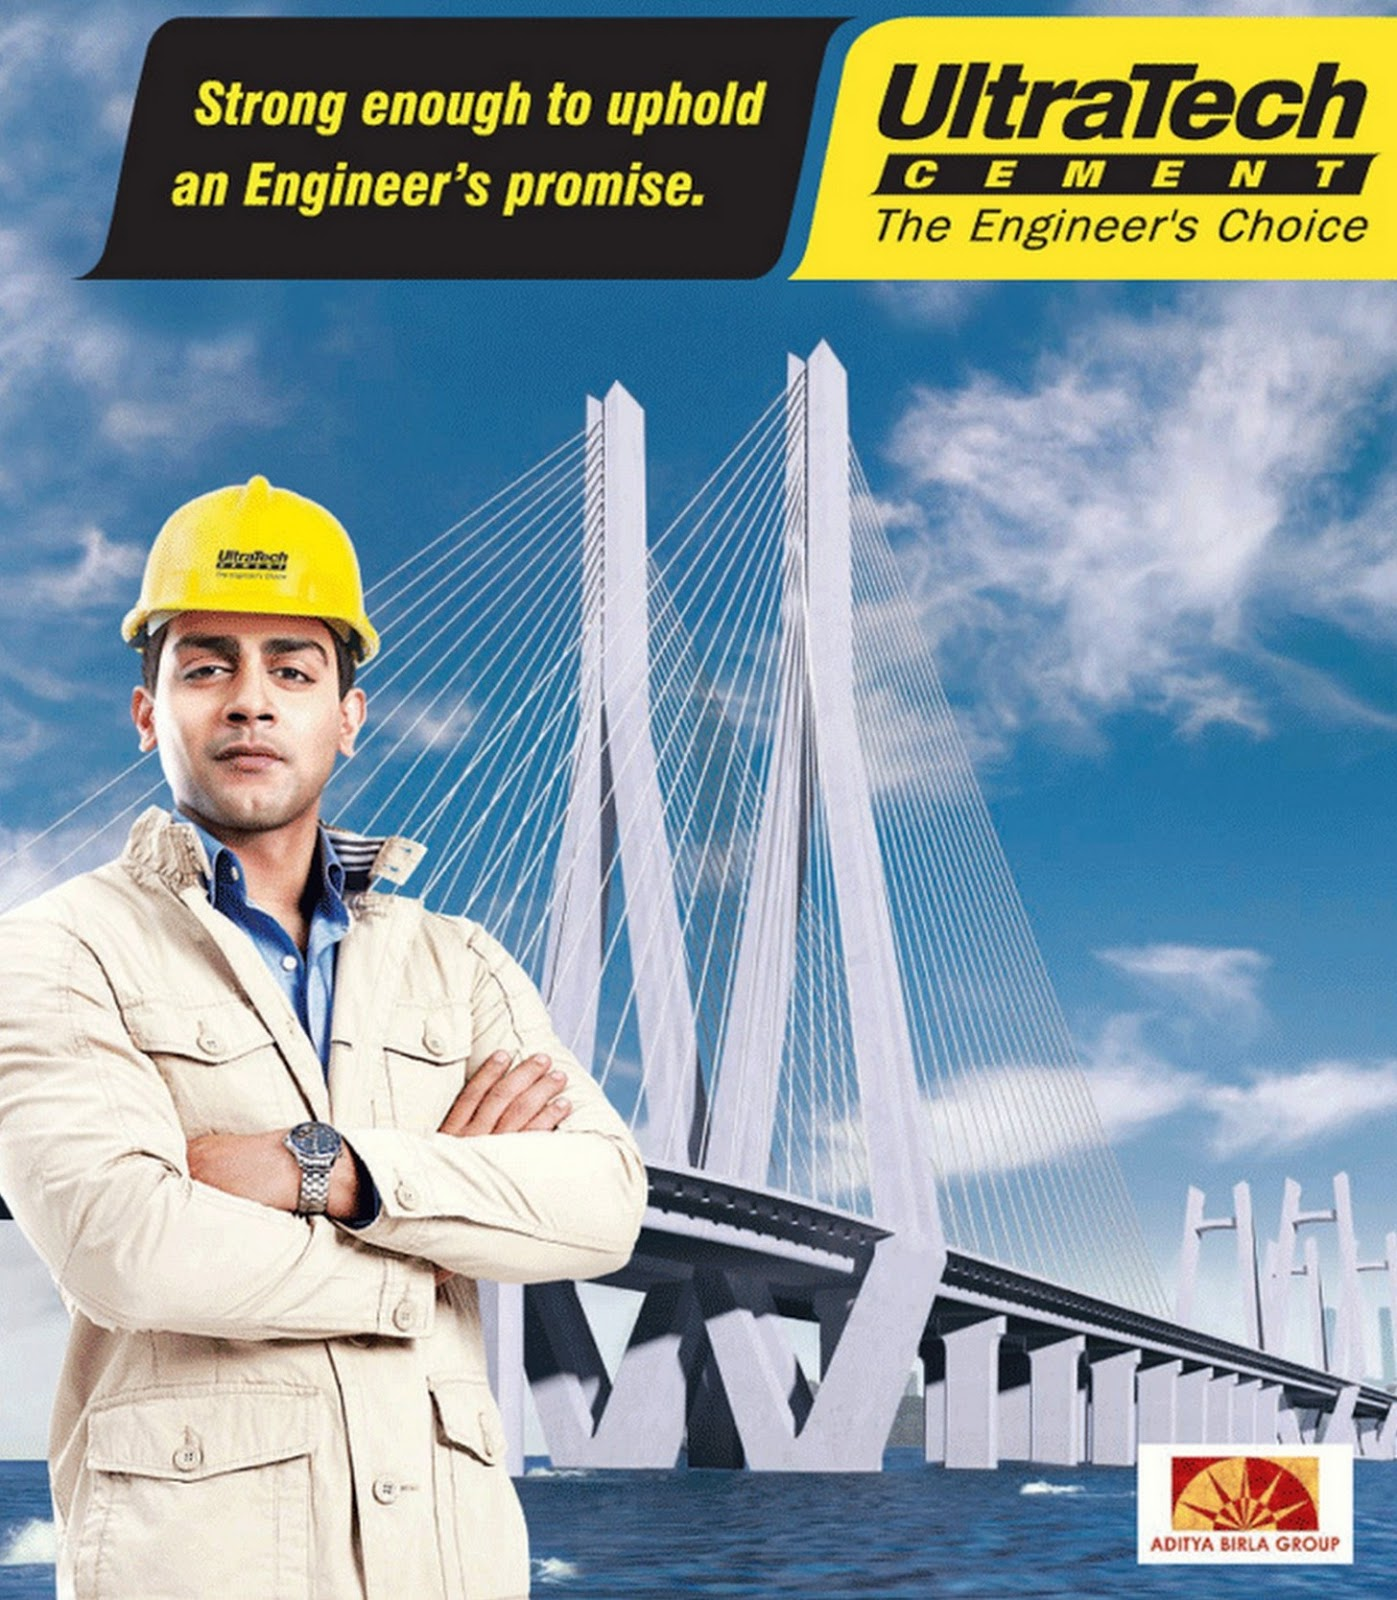 ultra tech cement job recruitment for civil engineers in